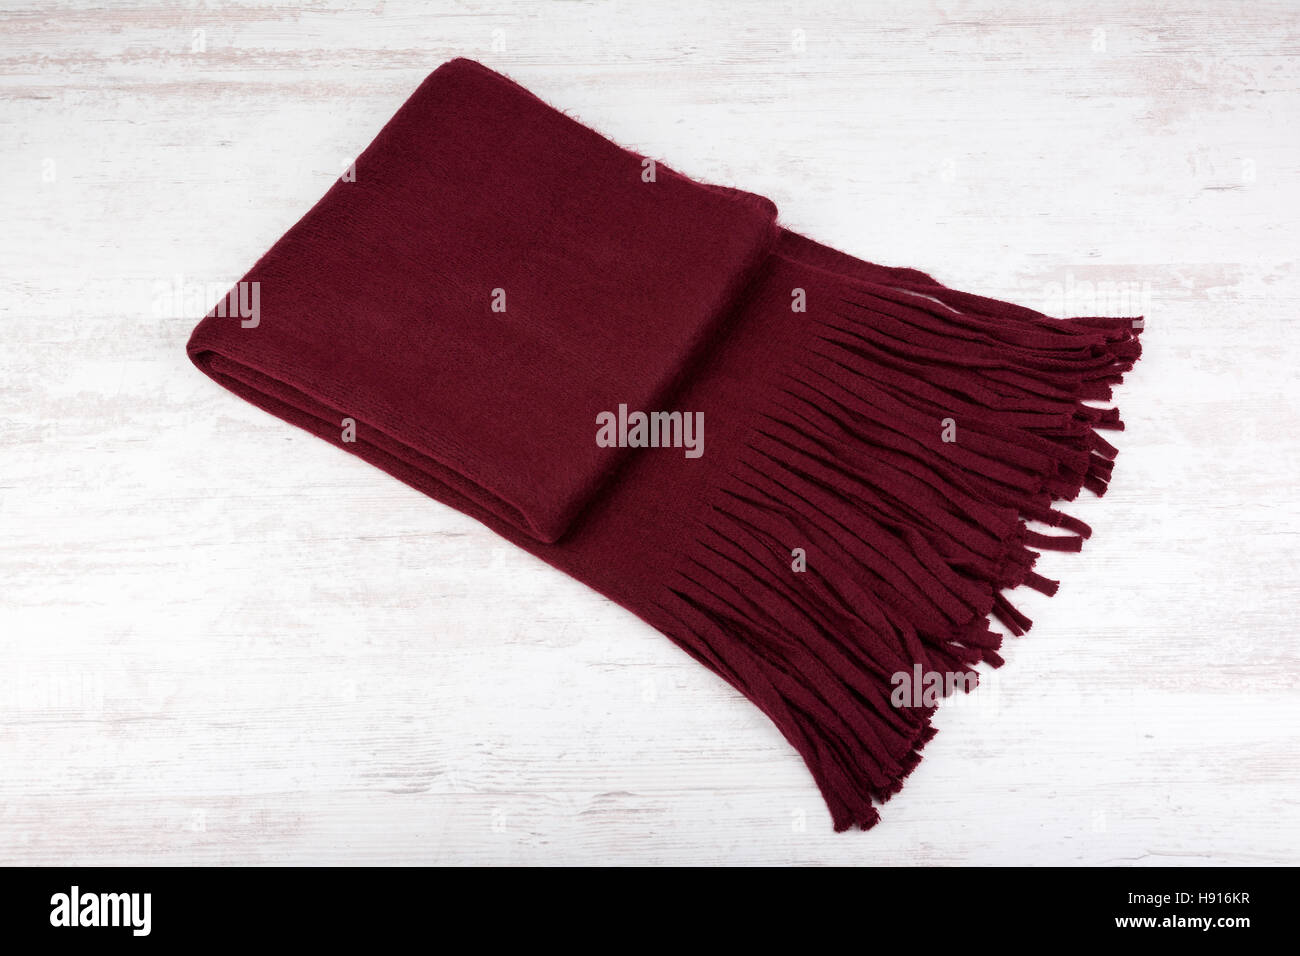 Woolen winter scarf on a white wooden background - Stock Image